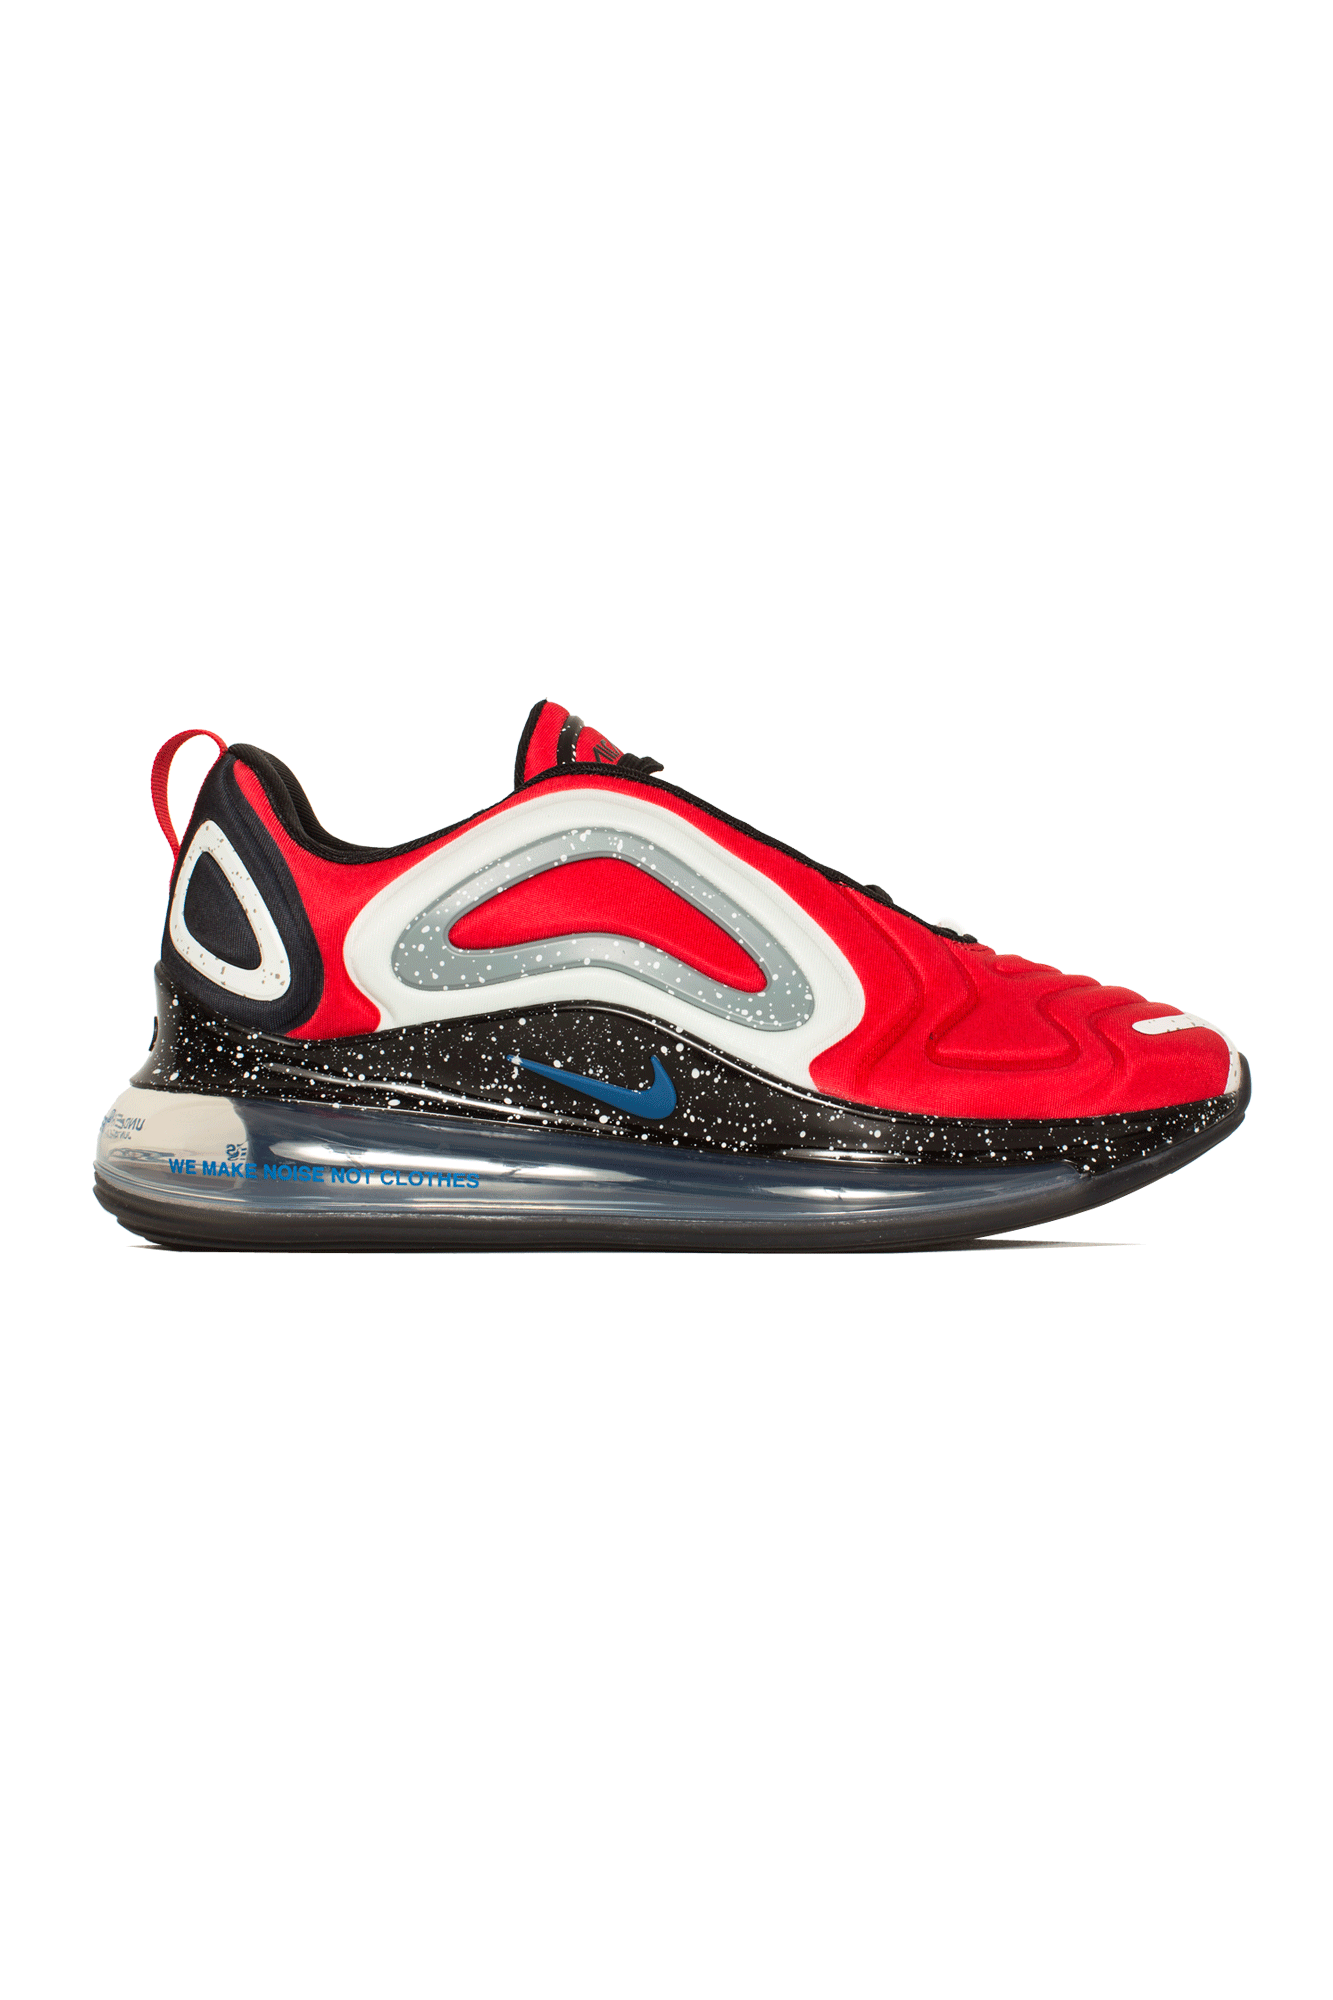 Nike Sneakers Air Max 720 x Undercover Red CN2408-#000#600#4 - One Block Down